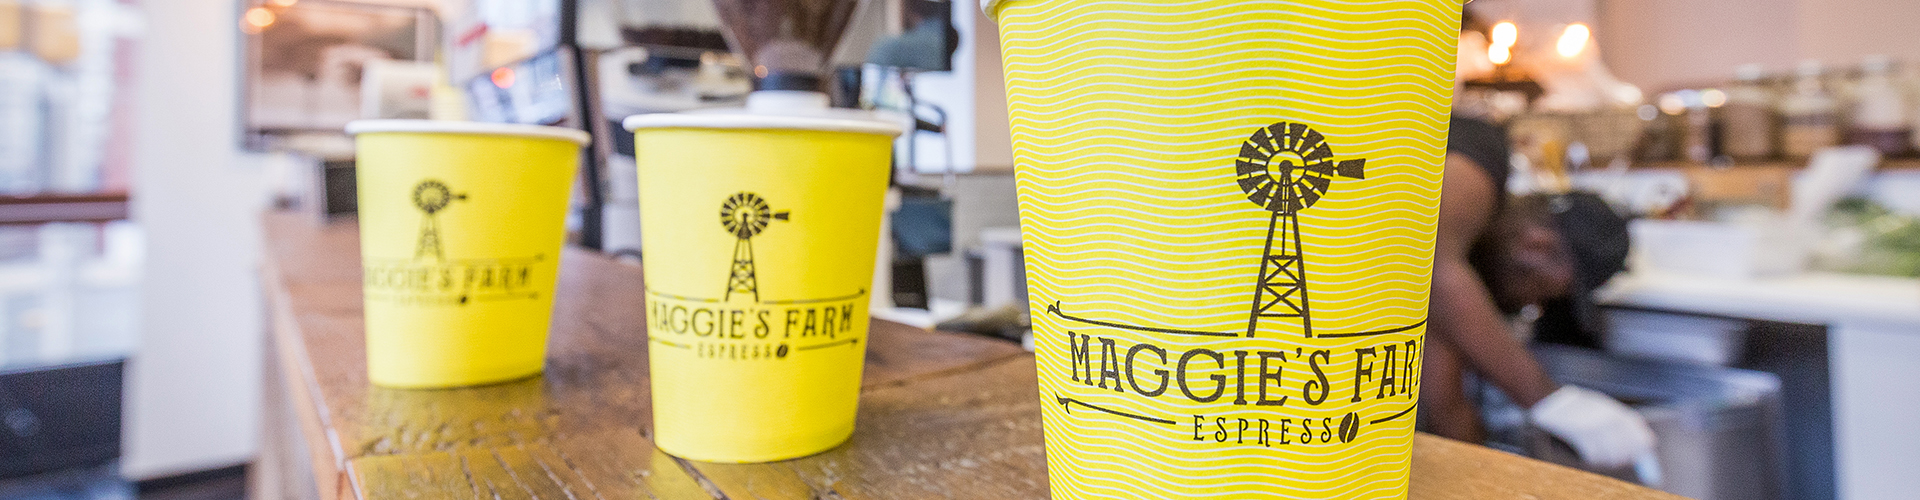 Maggie's Farm Espresso: Jersey City's Newest Aussie Coffee Destination